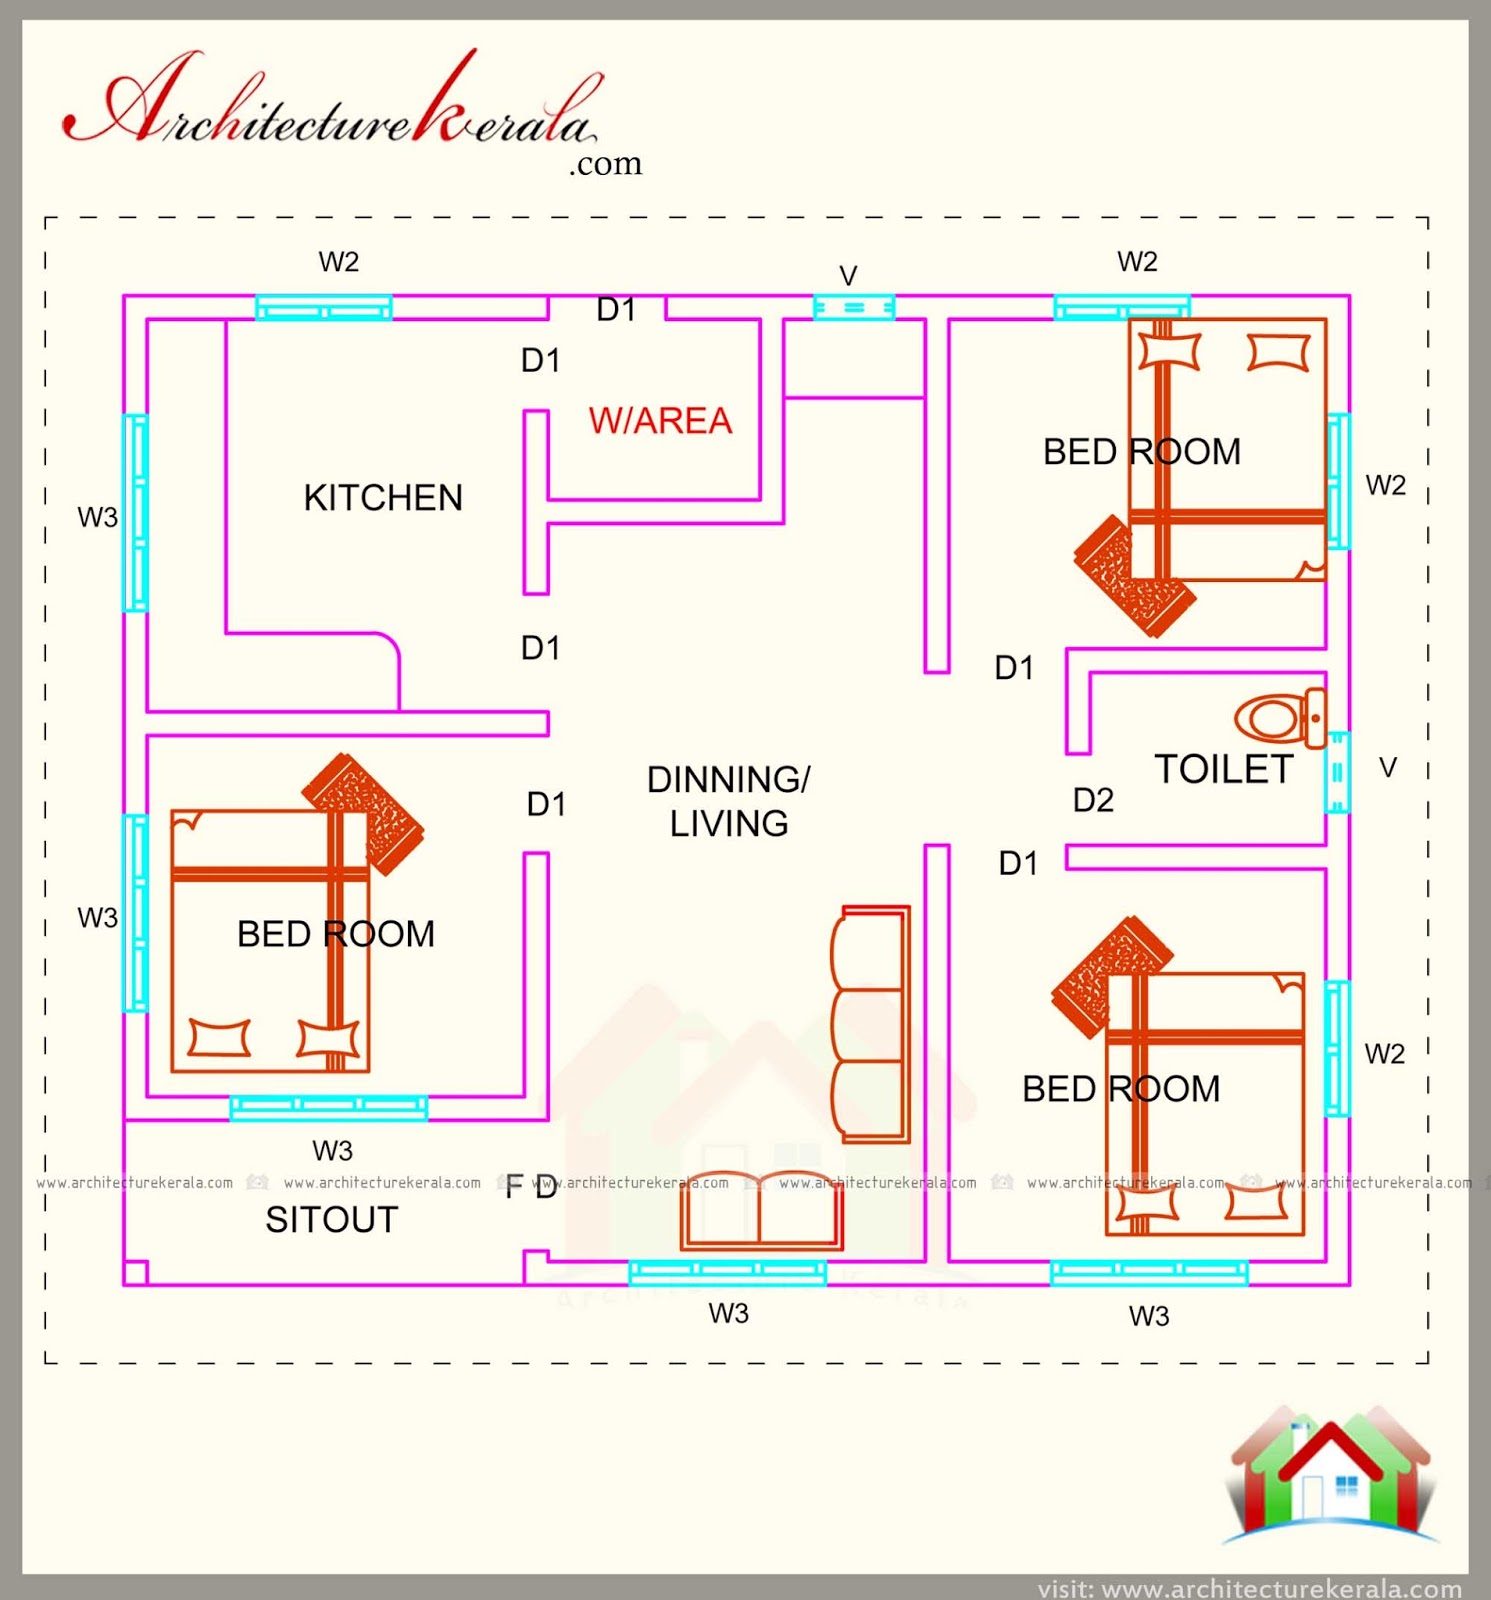 760 square feet 3 bedroom house plan architecture kerala for 3 bedroom house plan kerala